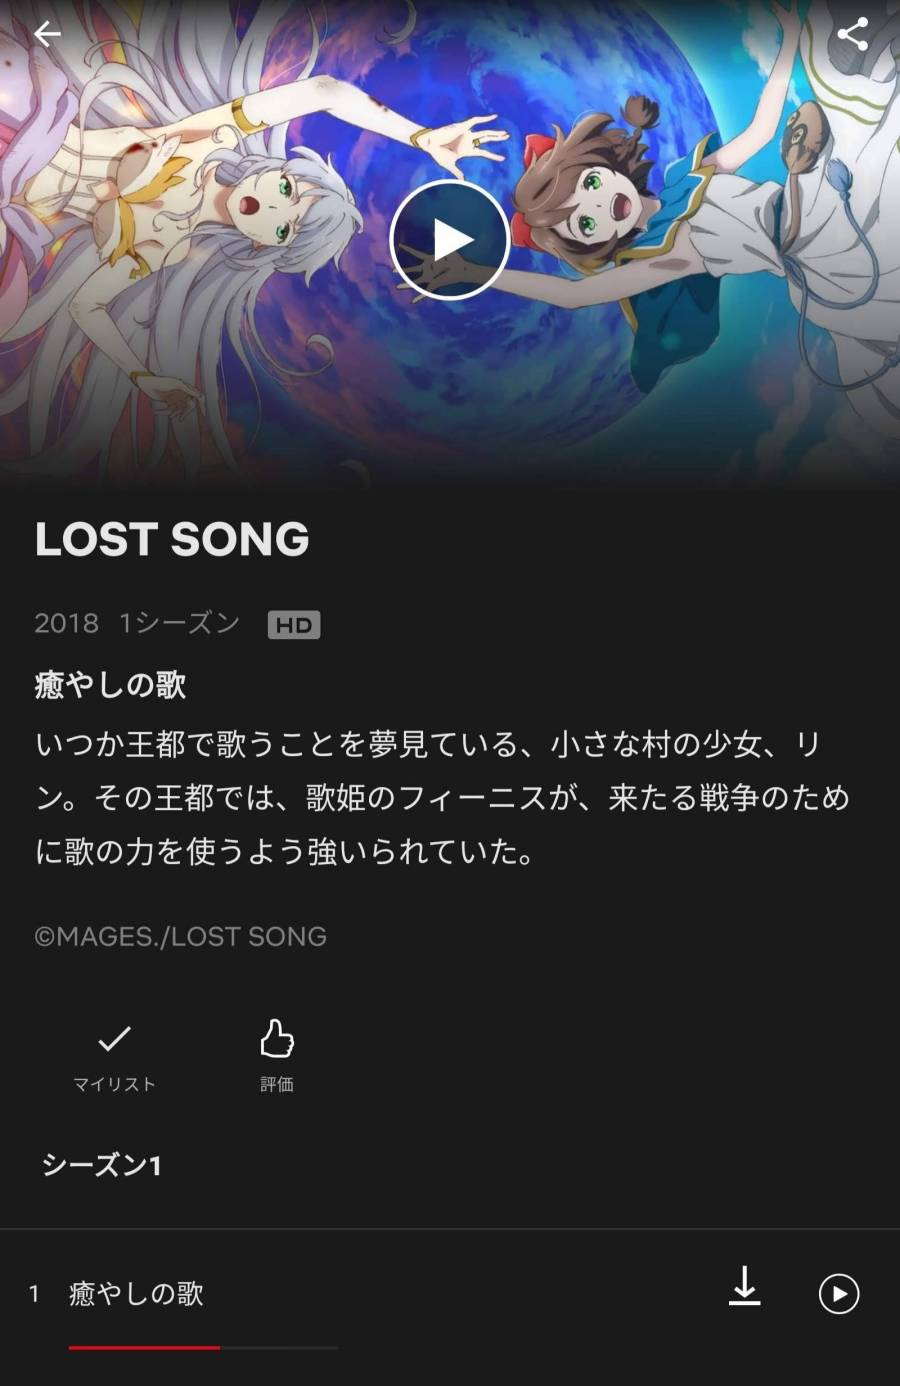 LOST SONG作品ページ